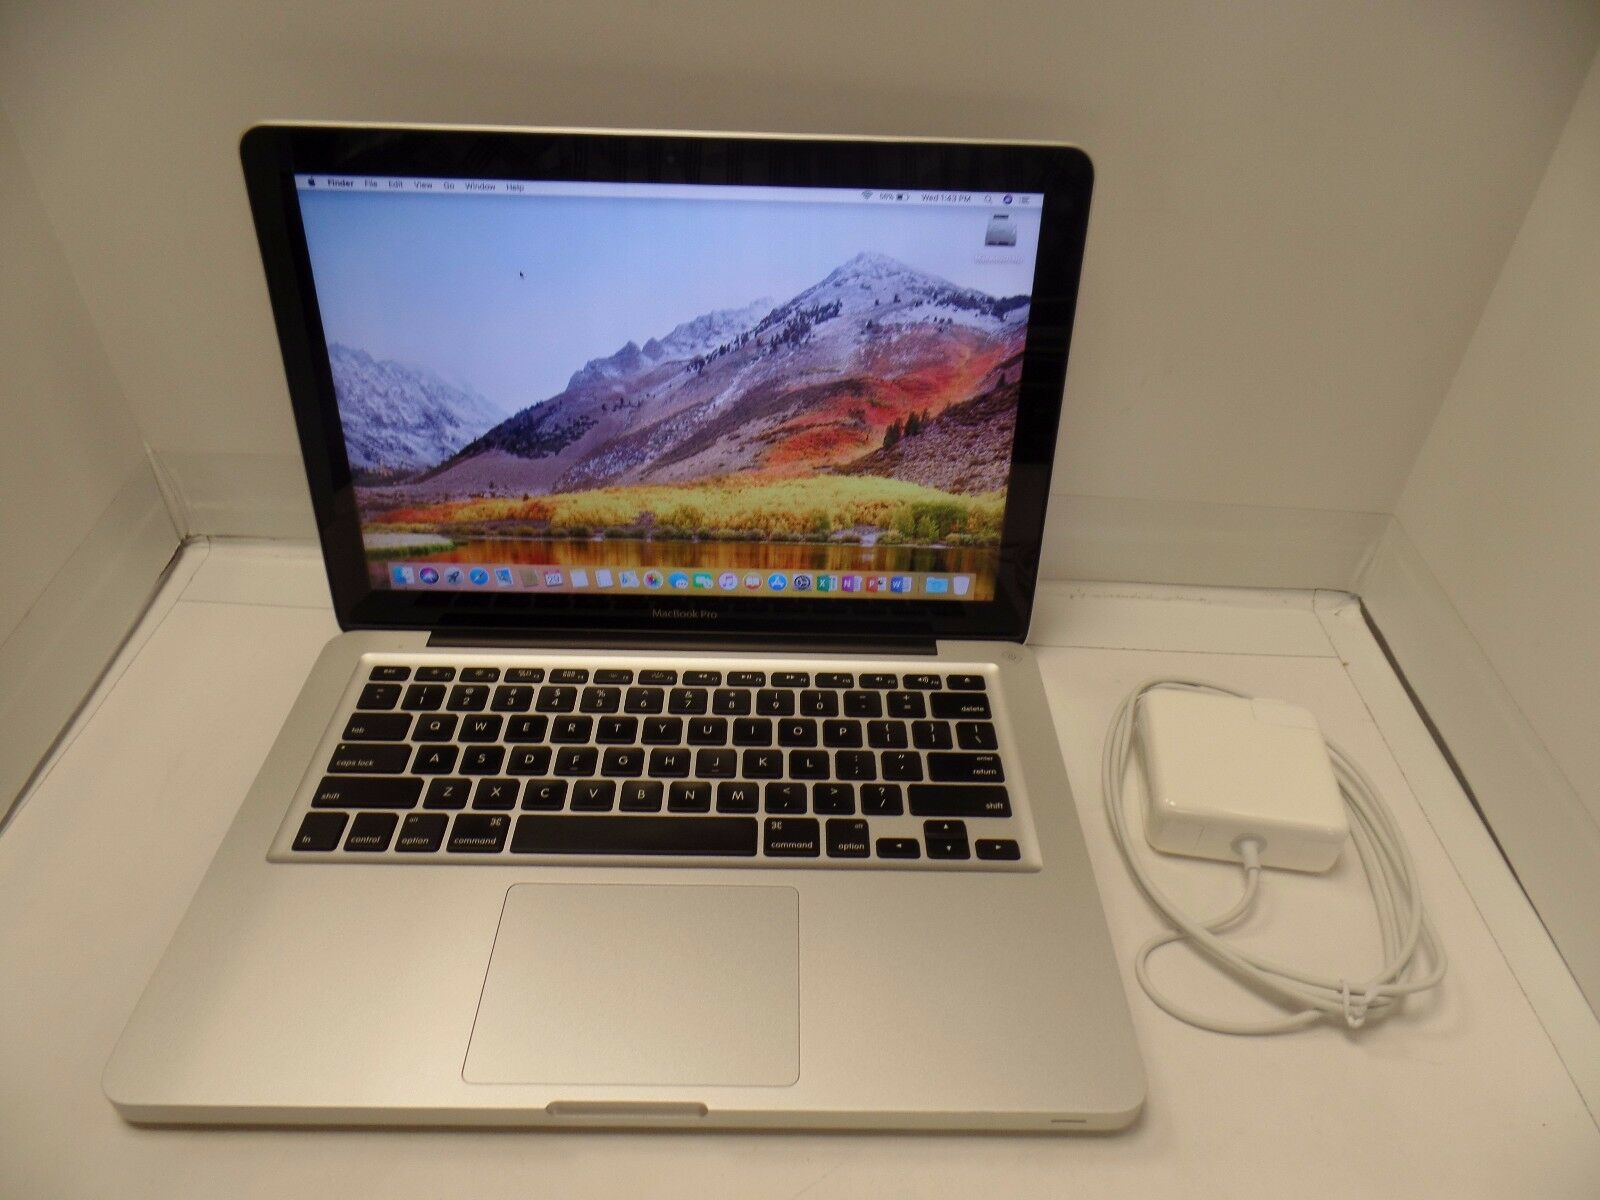 MacBook Pro 13 Mid 2012 MD101LL/A 2.9GHz i7 8GB *Good Condition* Office 2016